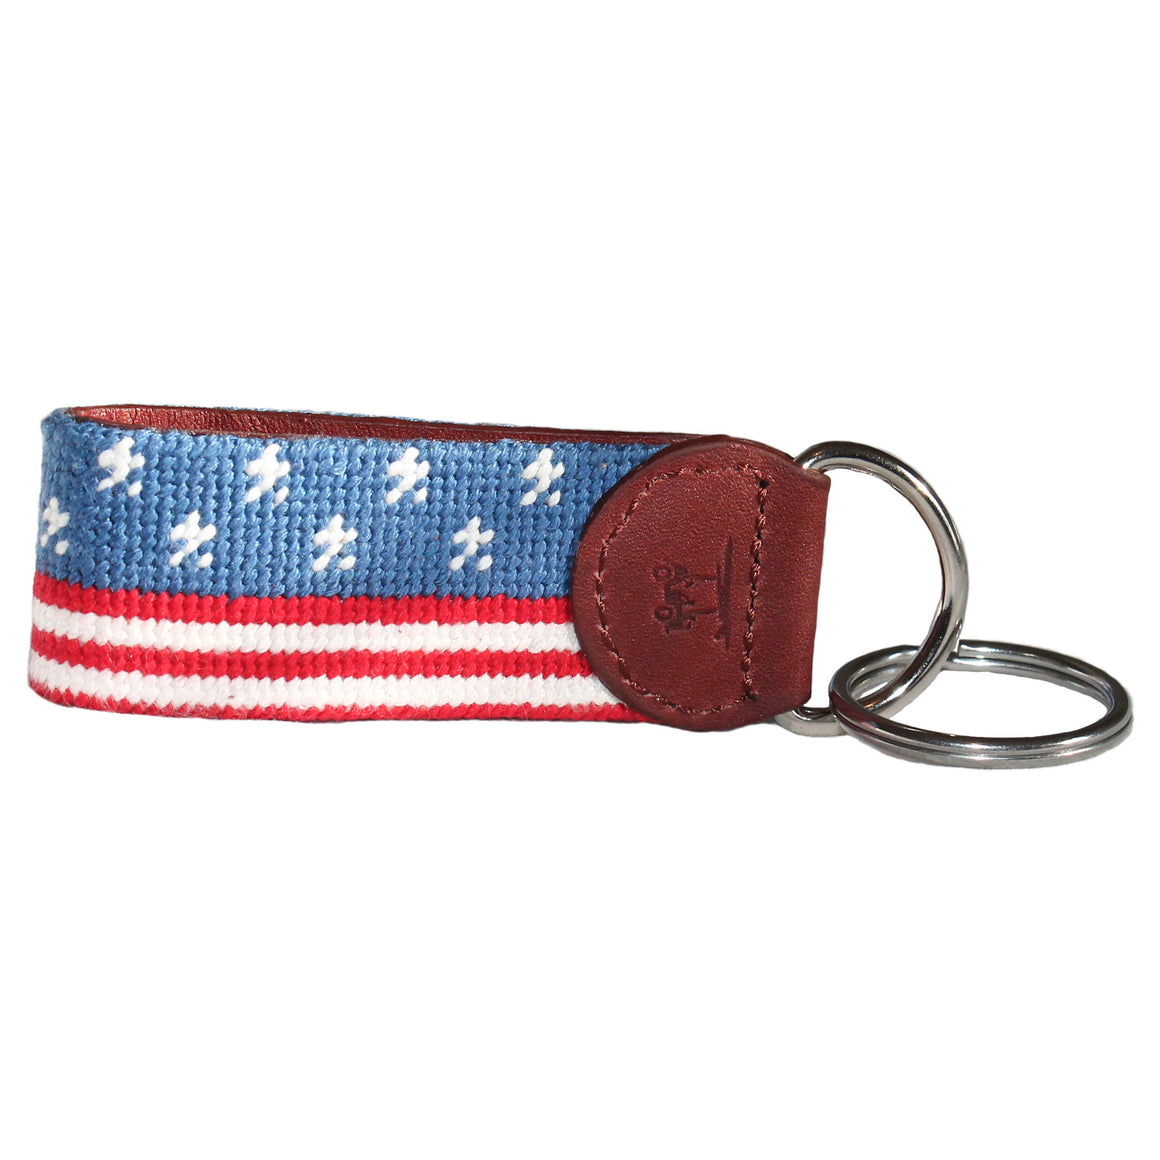 Needlepoint Key Fob - Stars and Stripes